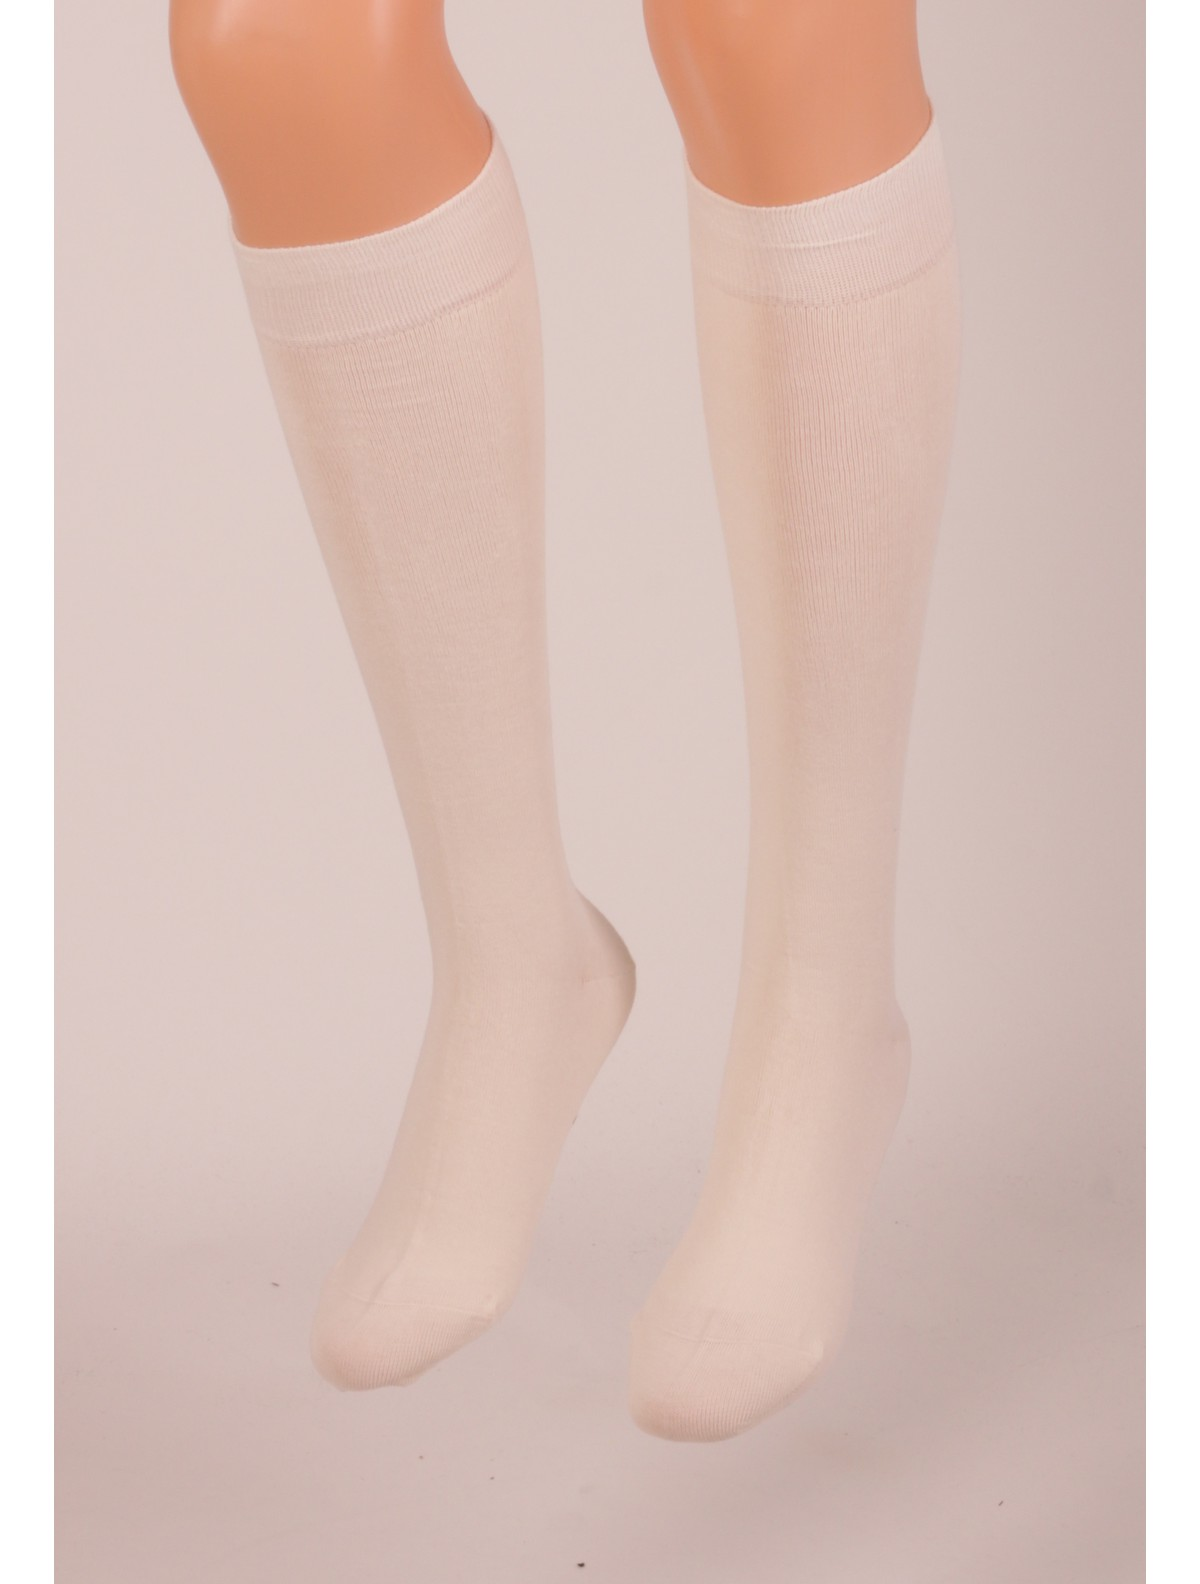 Cotton cable-knit knee high socks for women will not sag and stay up all day long. Available in plus size.4/5(62).